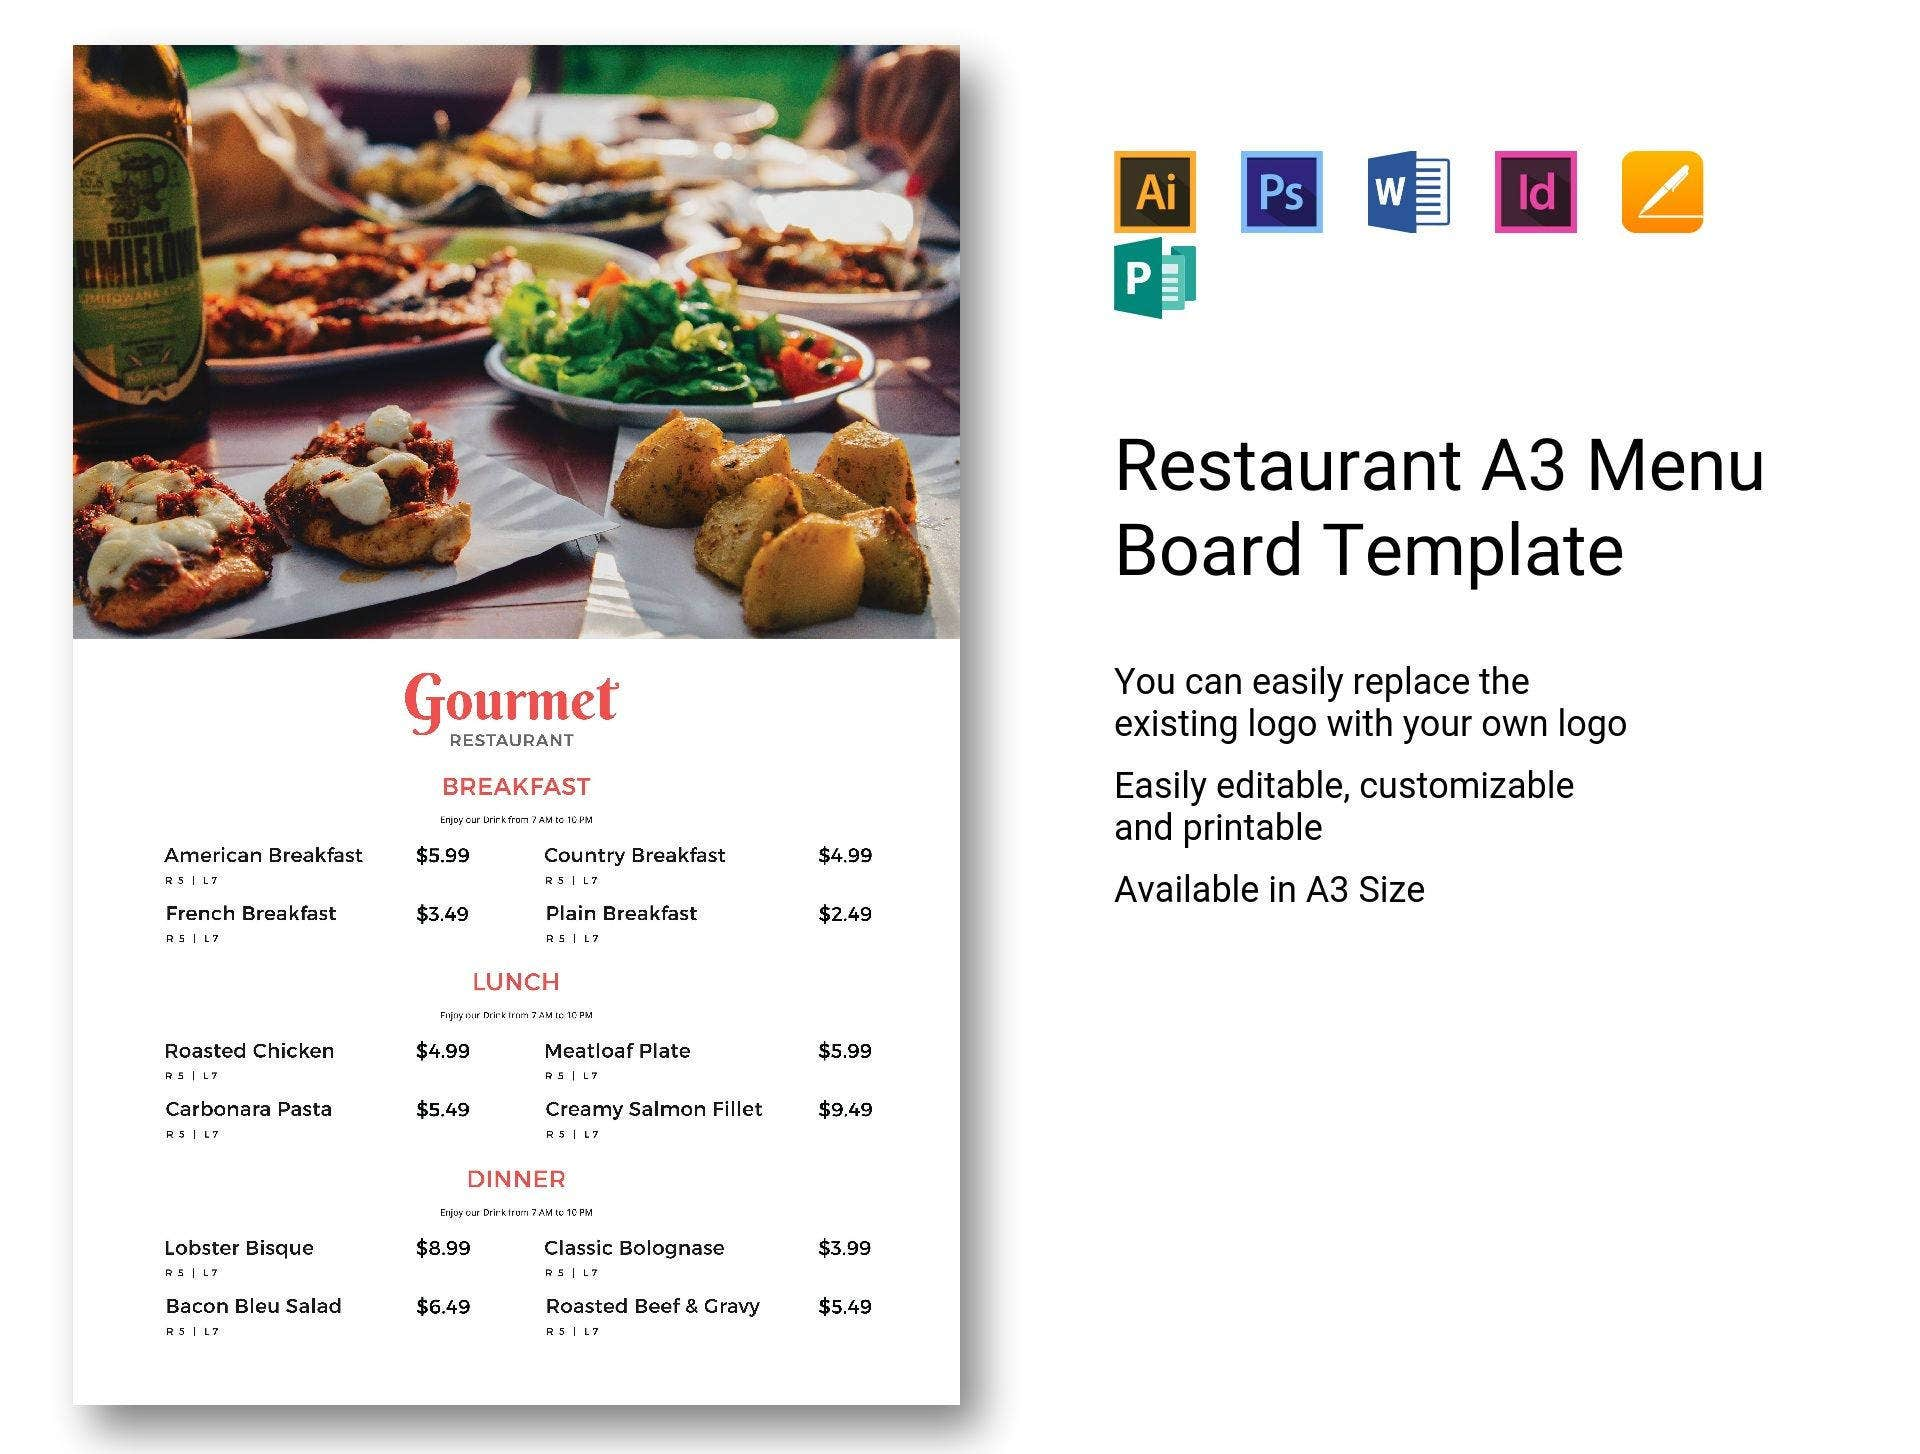 restaurant-a3-menu-board-template